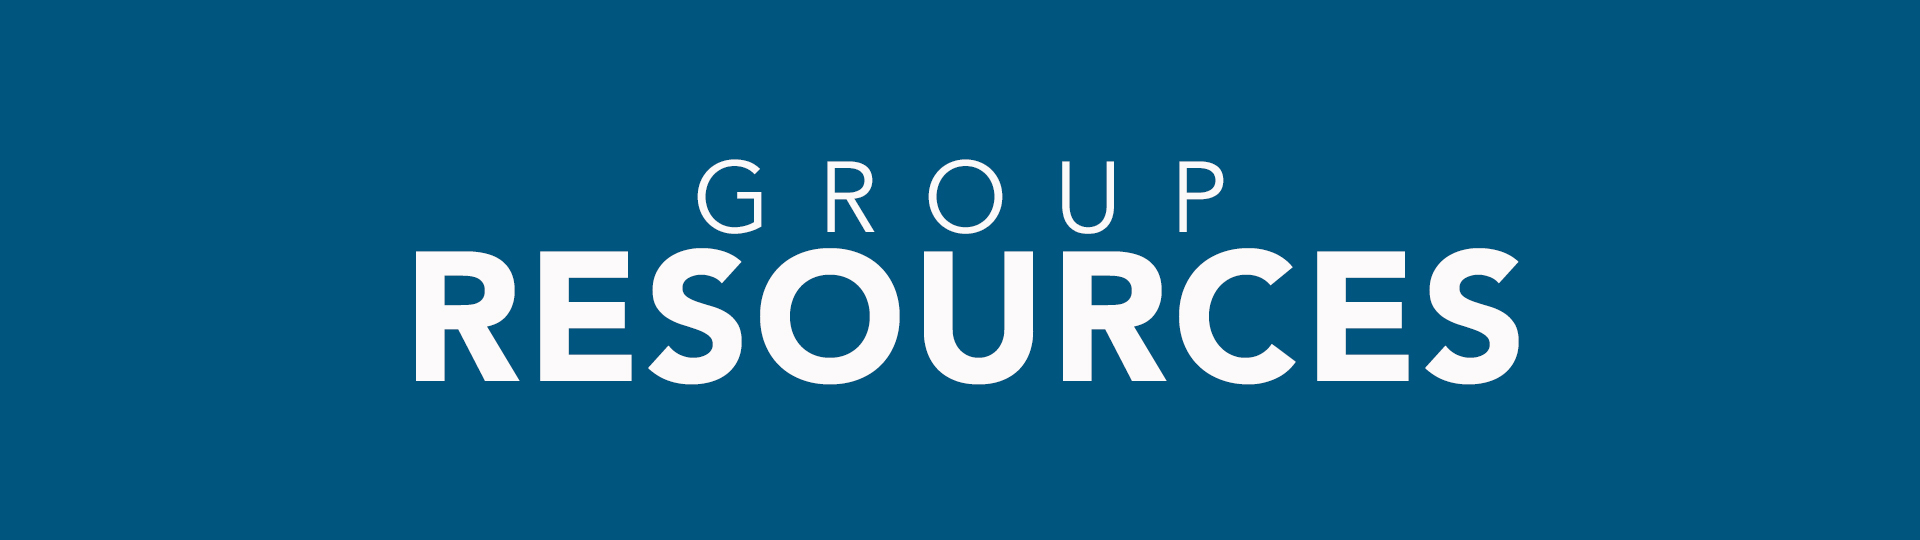 Group Resources.jpg